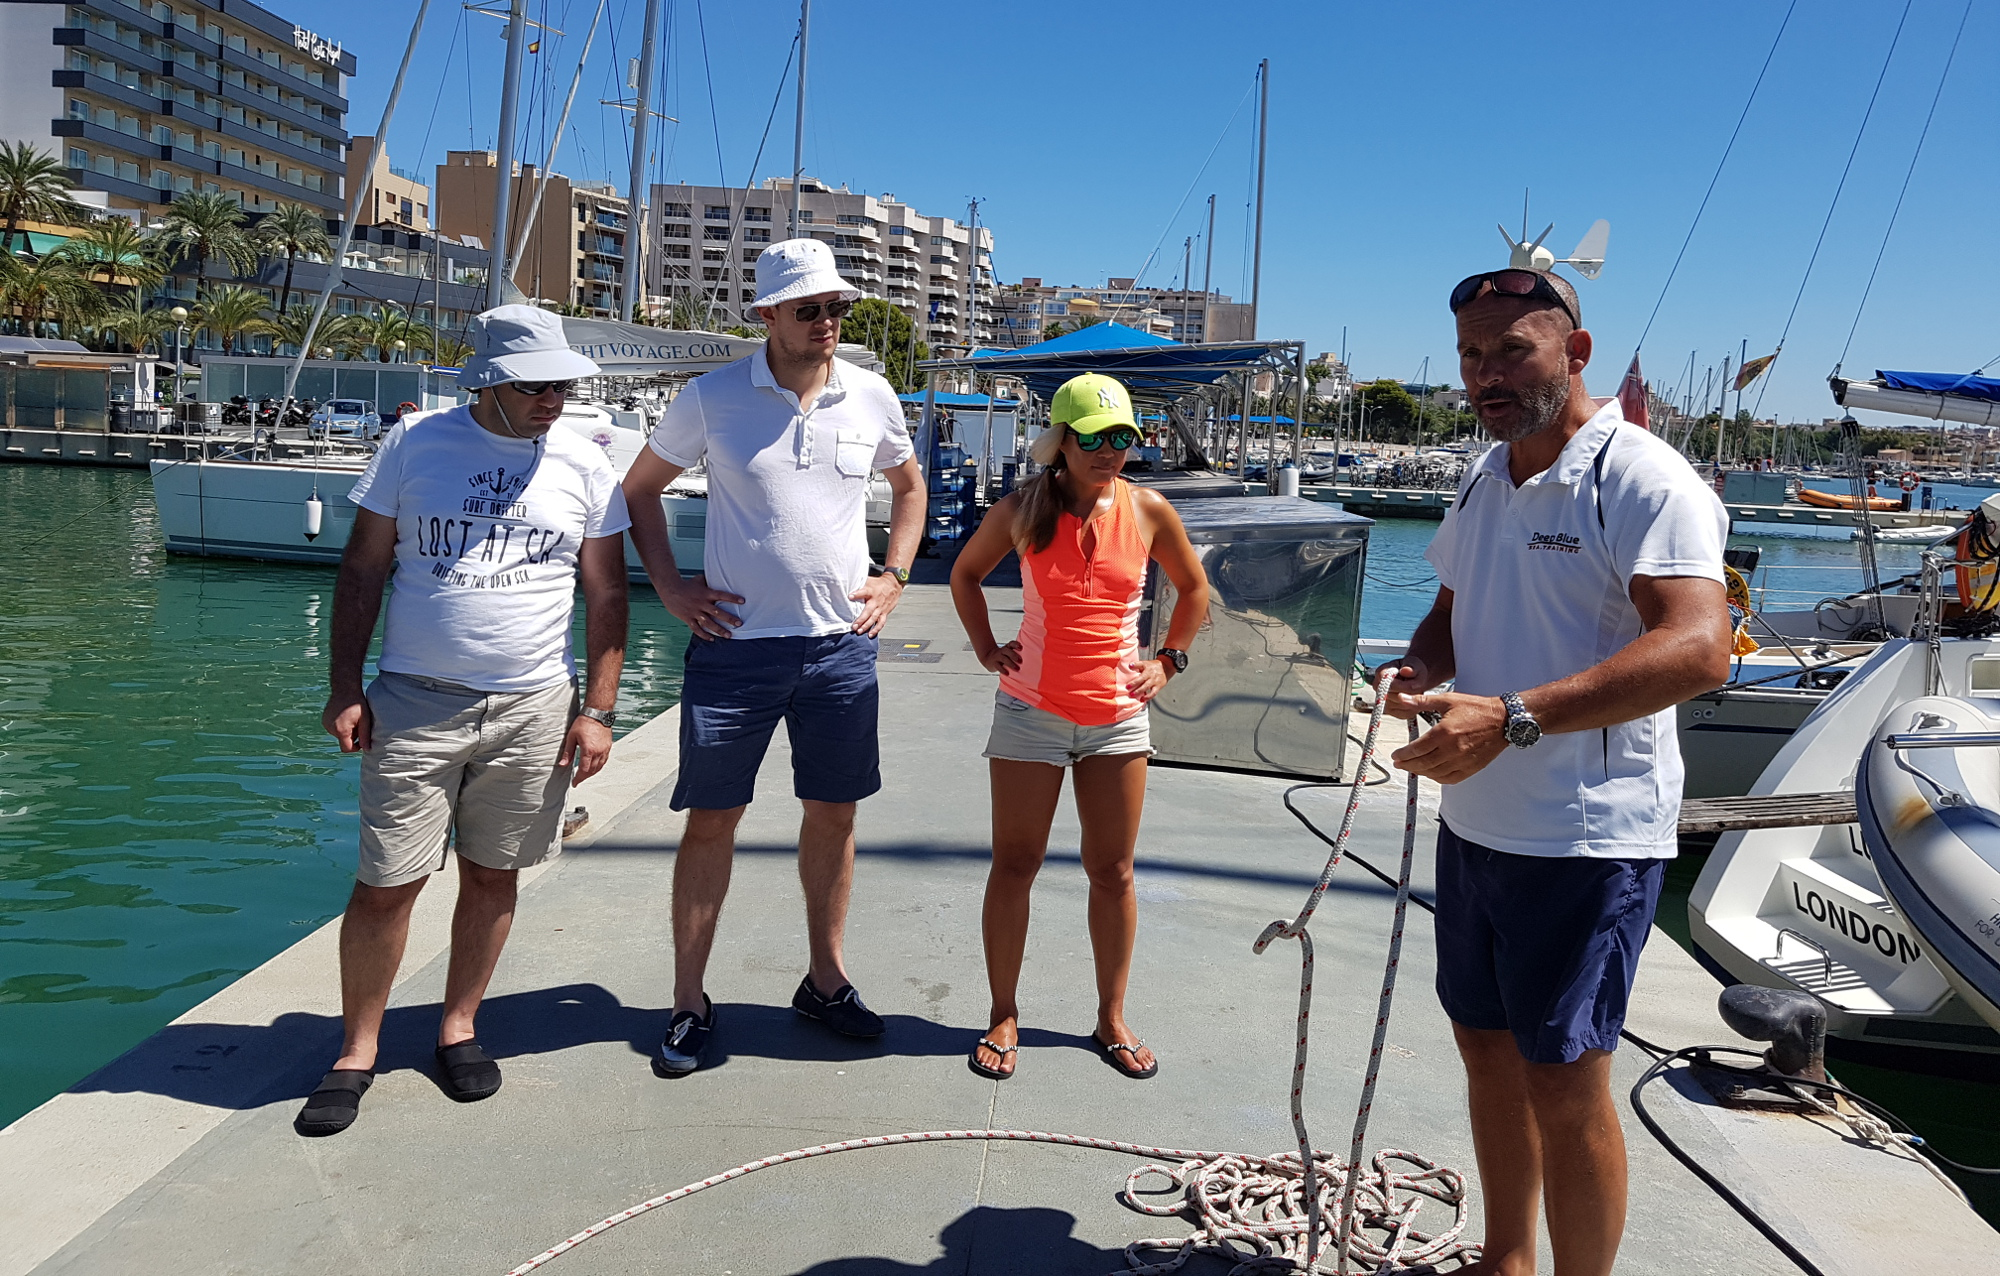 Yachtmaster Mallorca Rya Courses And Training In Palma De Mallorca Leading To The Yachtmaster Qualification